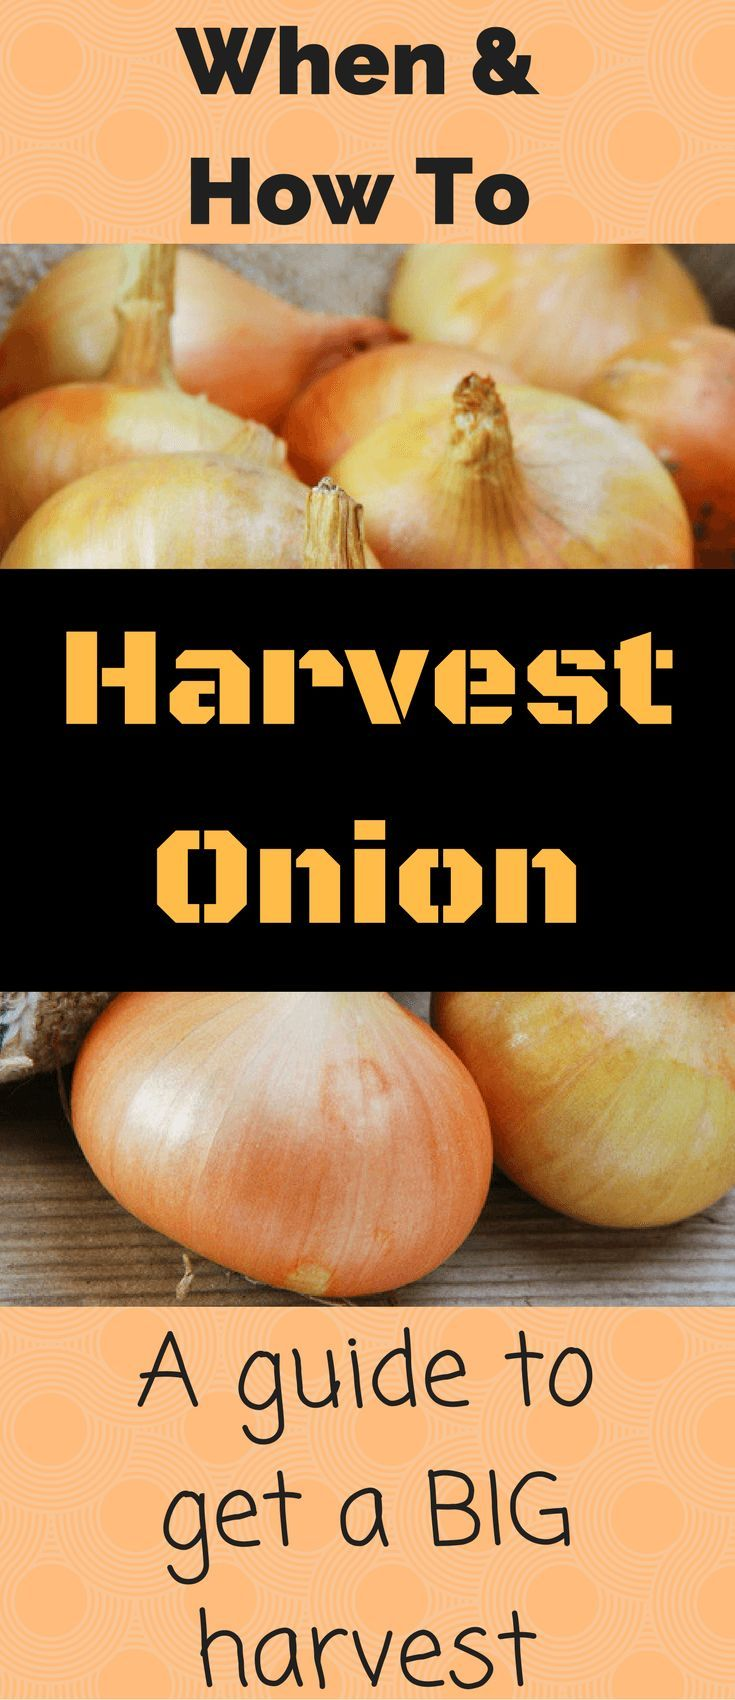 When and how to harvest onions is a vital question for every gardener who wishes to have homegrown onions. I have answered that question, and here it is.